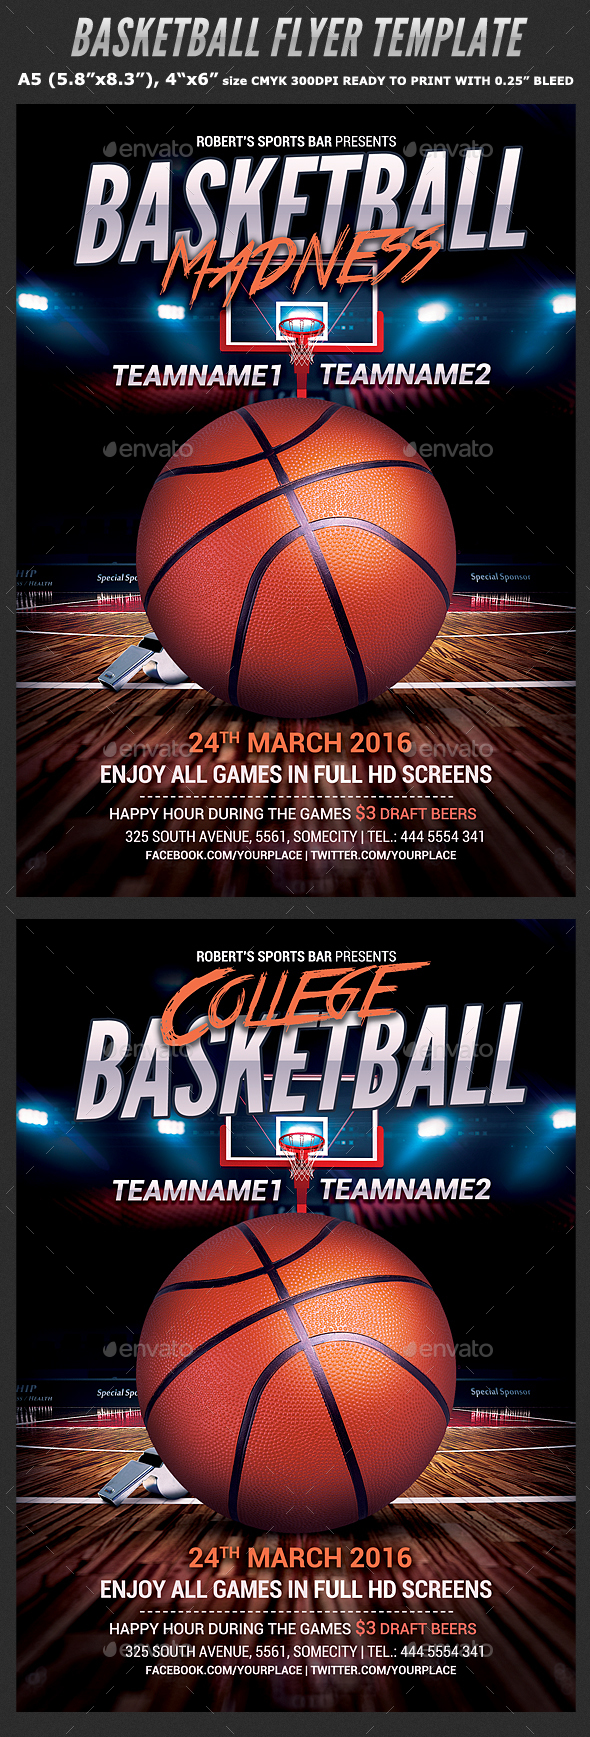 basketball flyer template by hotpin graphicriver. Black Bedroom Furniture Sets. Home Design Ideas